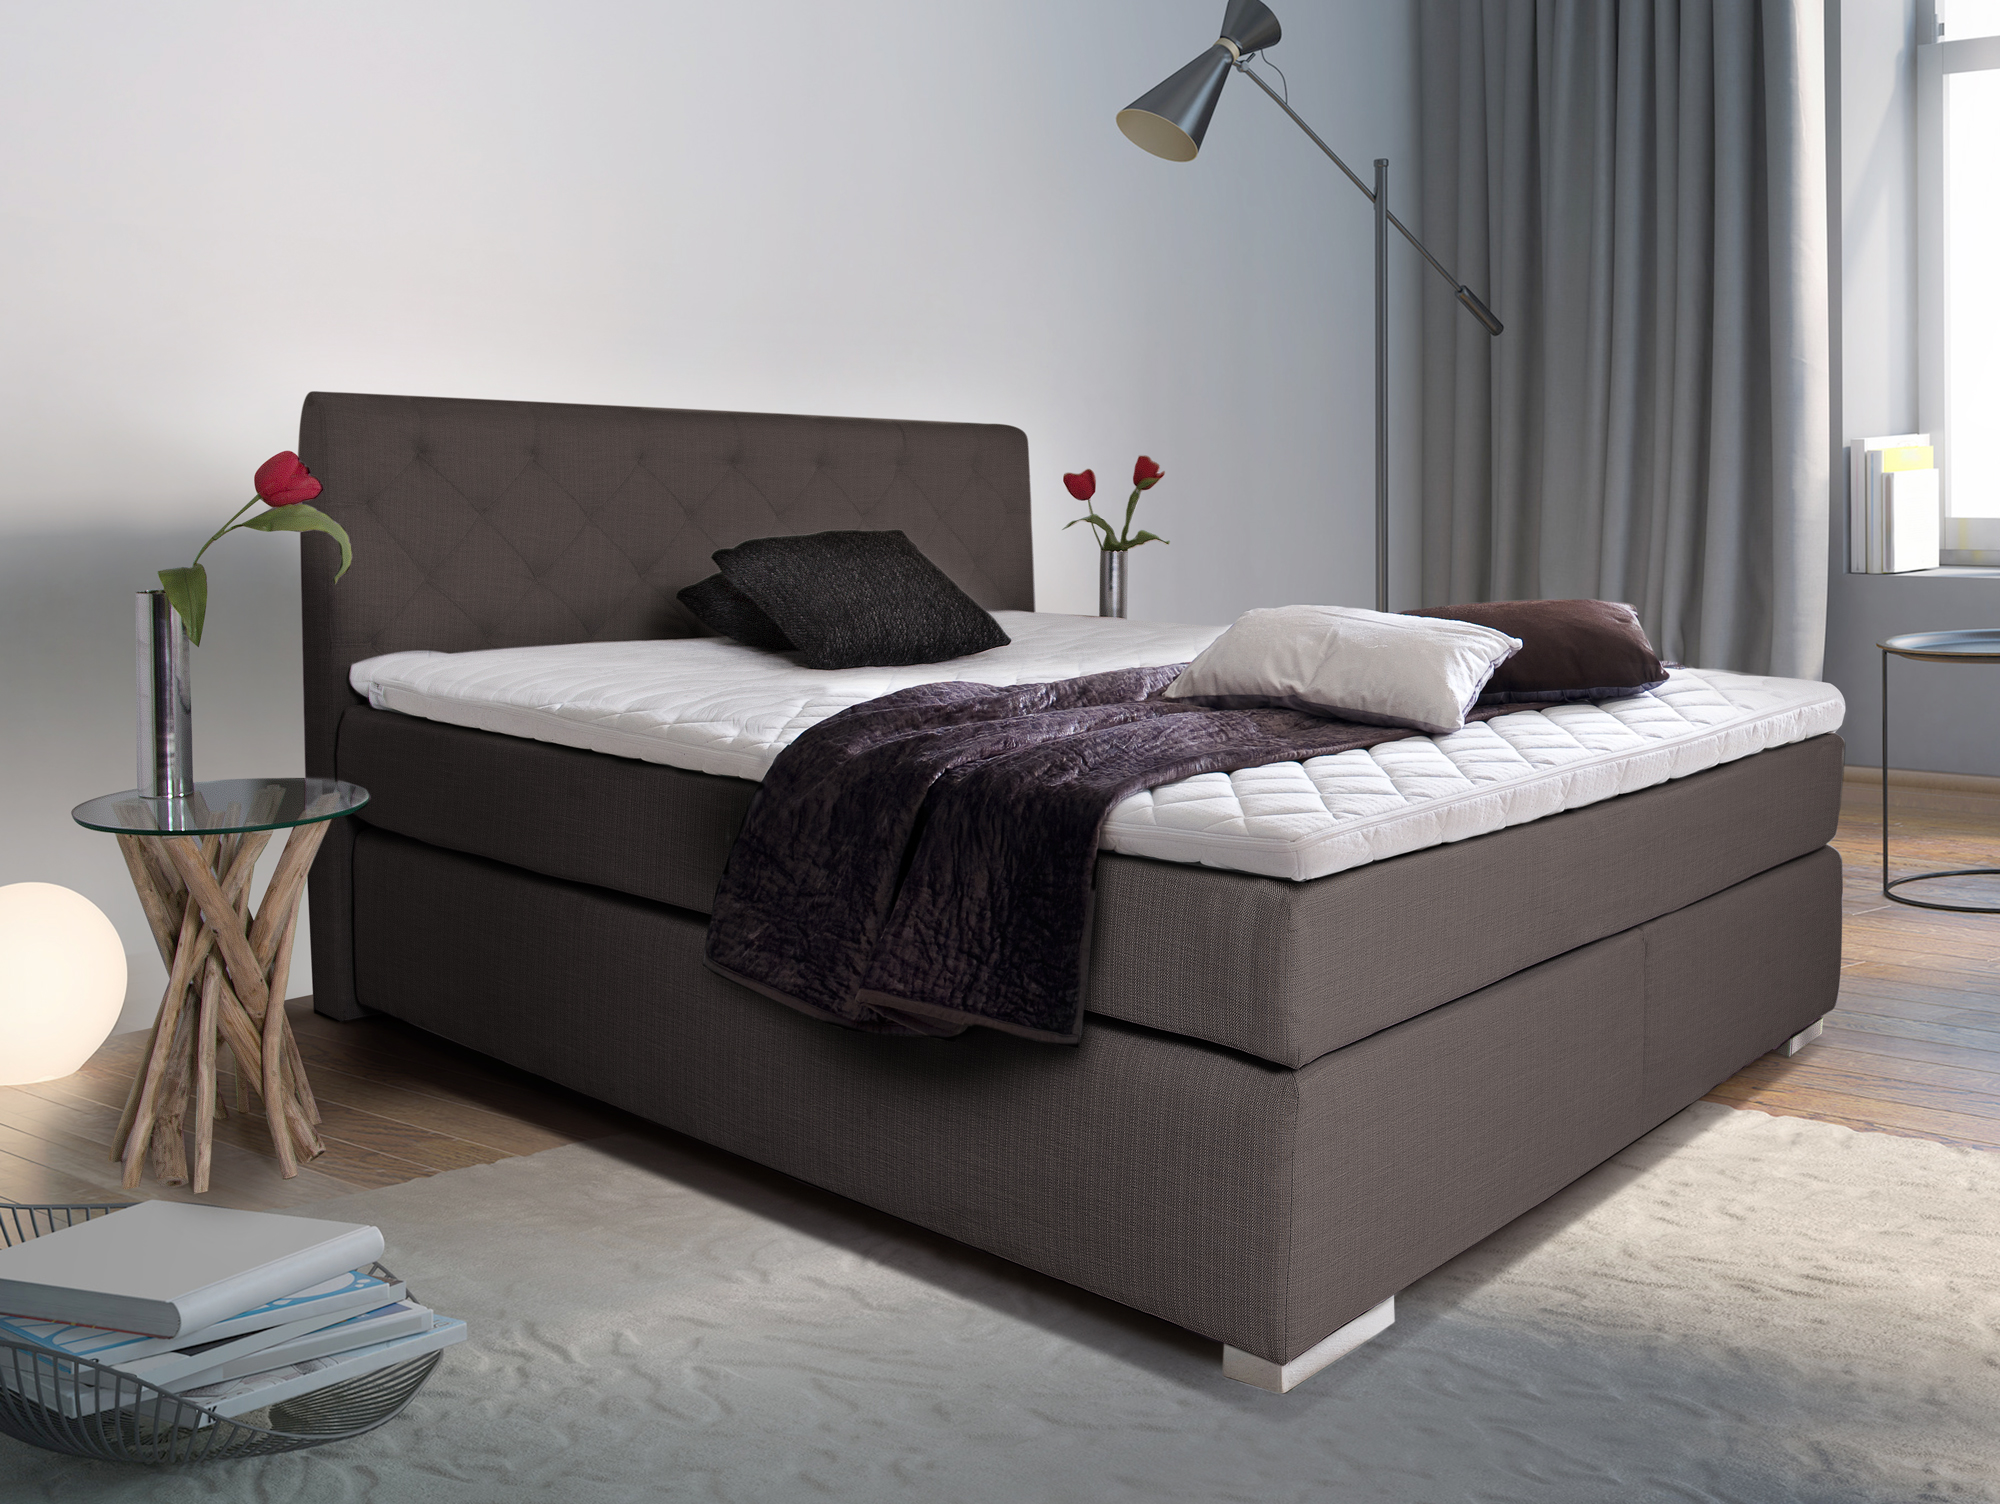 premium boxspringbett inkl kopfteil 200 x 200 cm braun. Black Bedroom Furniture Sets. Home Design Ideas